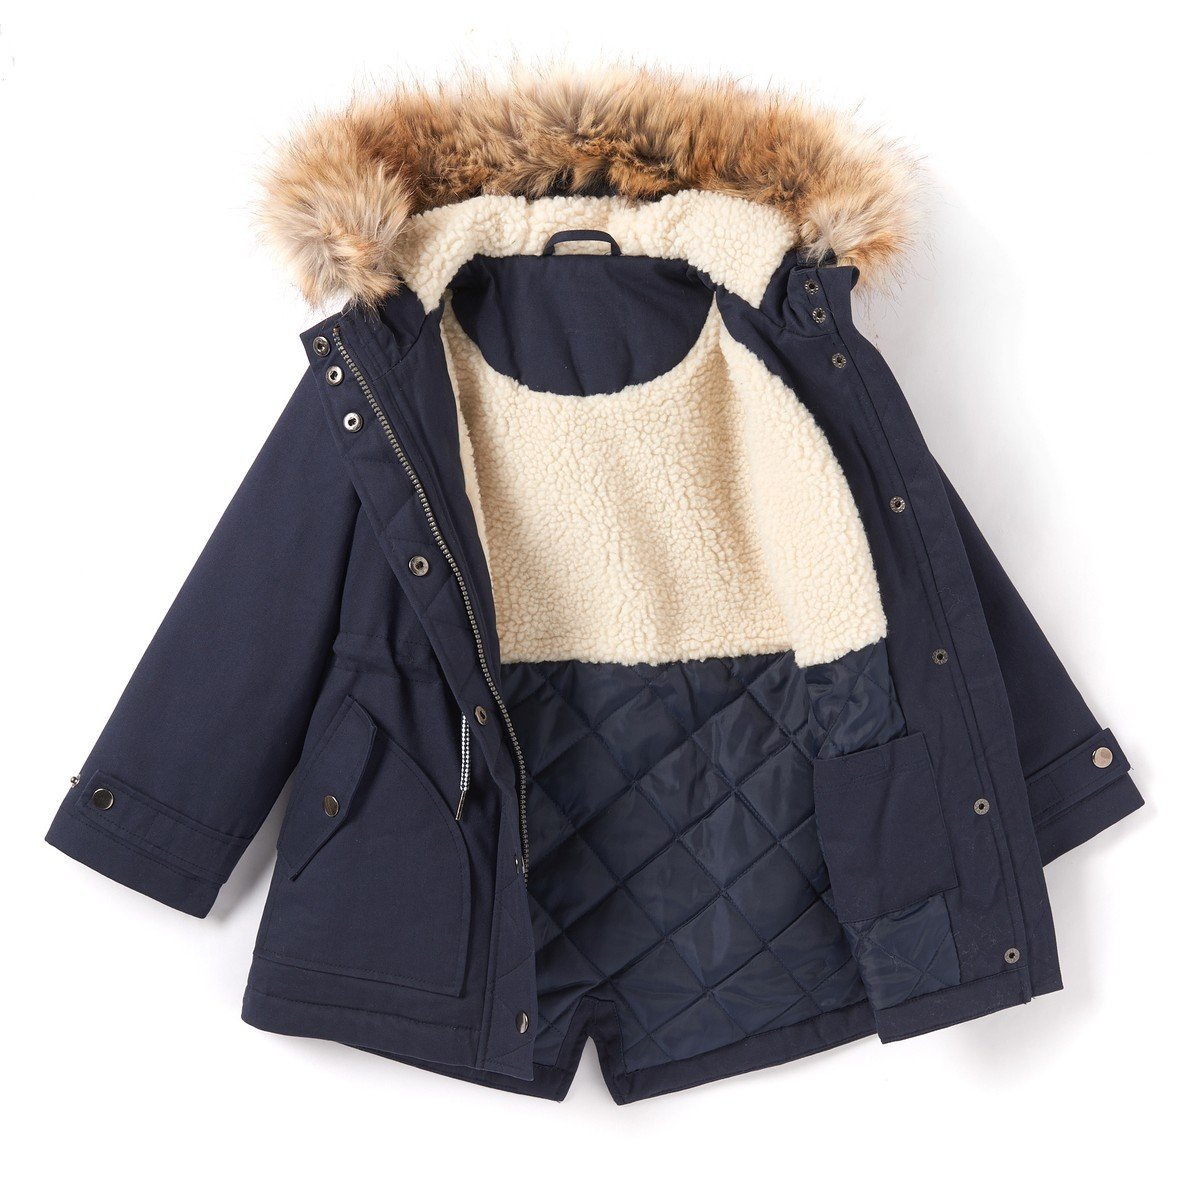 La Redoute Collections Big Girls Hooded Parka 3-12 Years